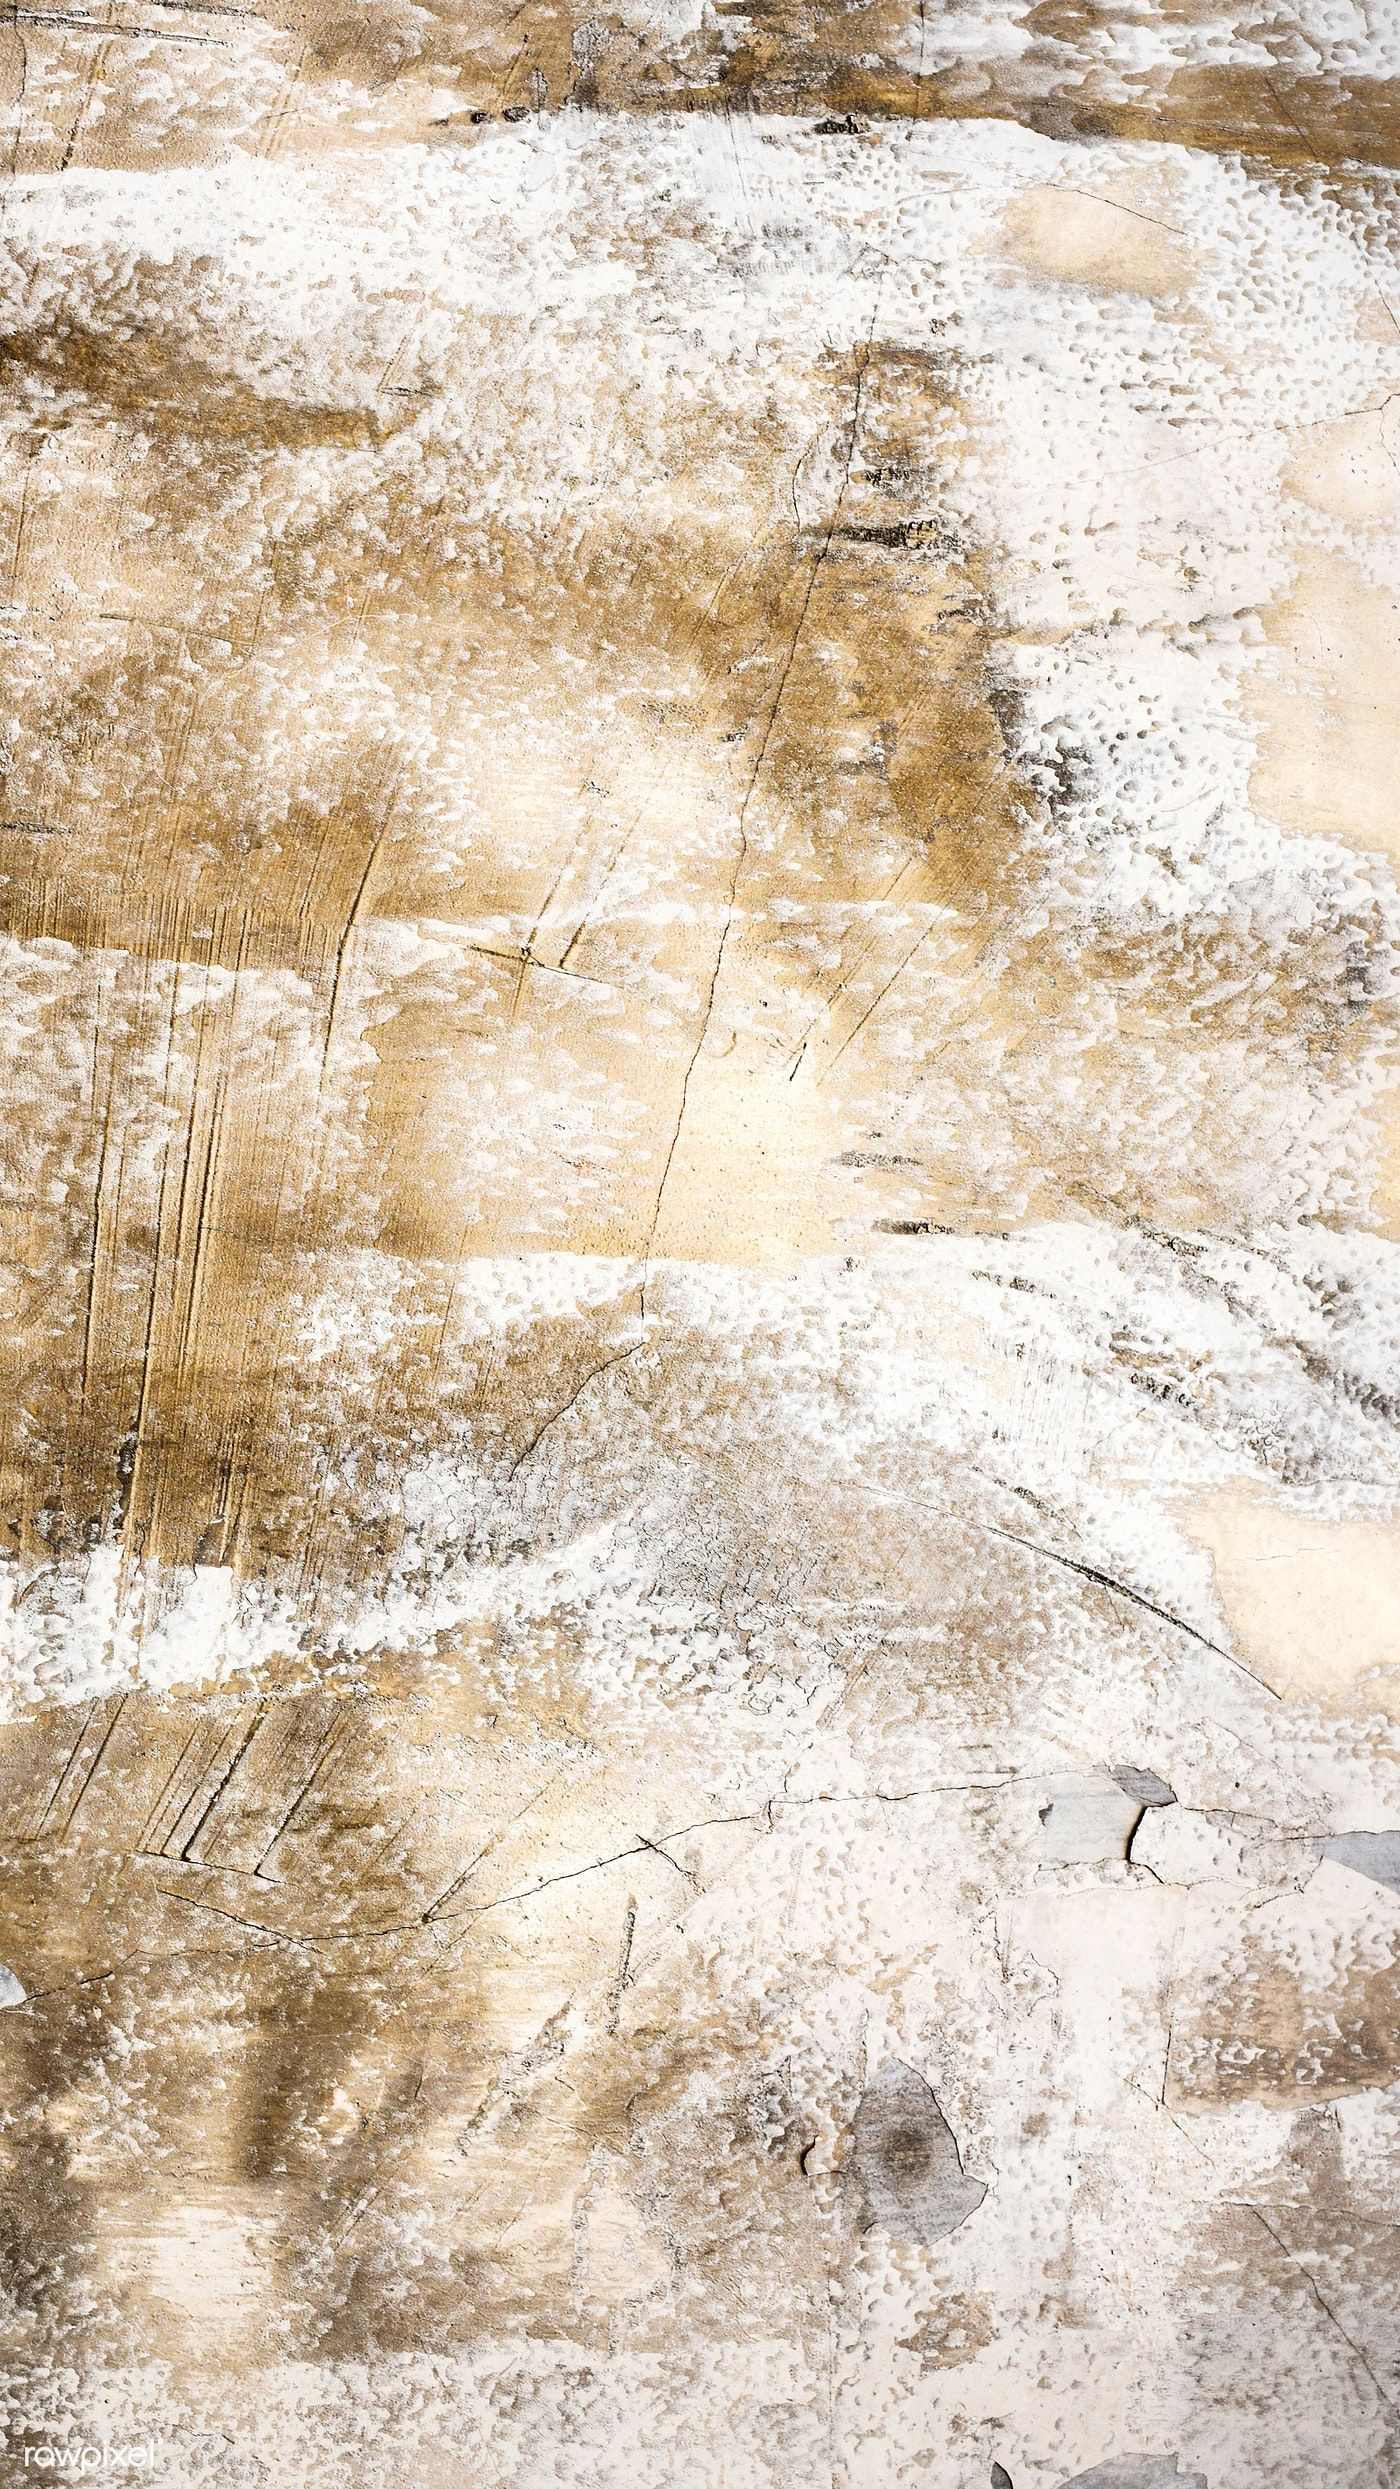 Cracked Rustic Brown Concrete Mobile Phone Wallpaper Premium Image By Rawpixel Com Kenbaolocpro Rustic Wallpaper Rustic Background Textured Wallpaper